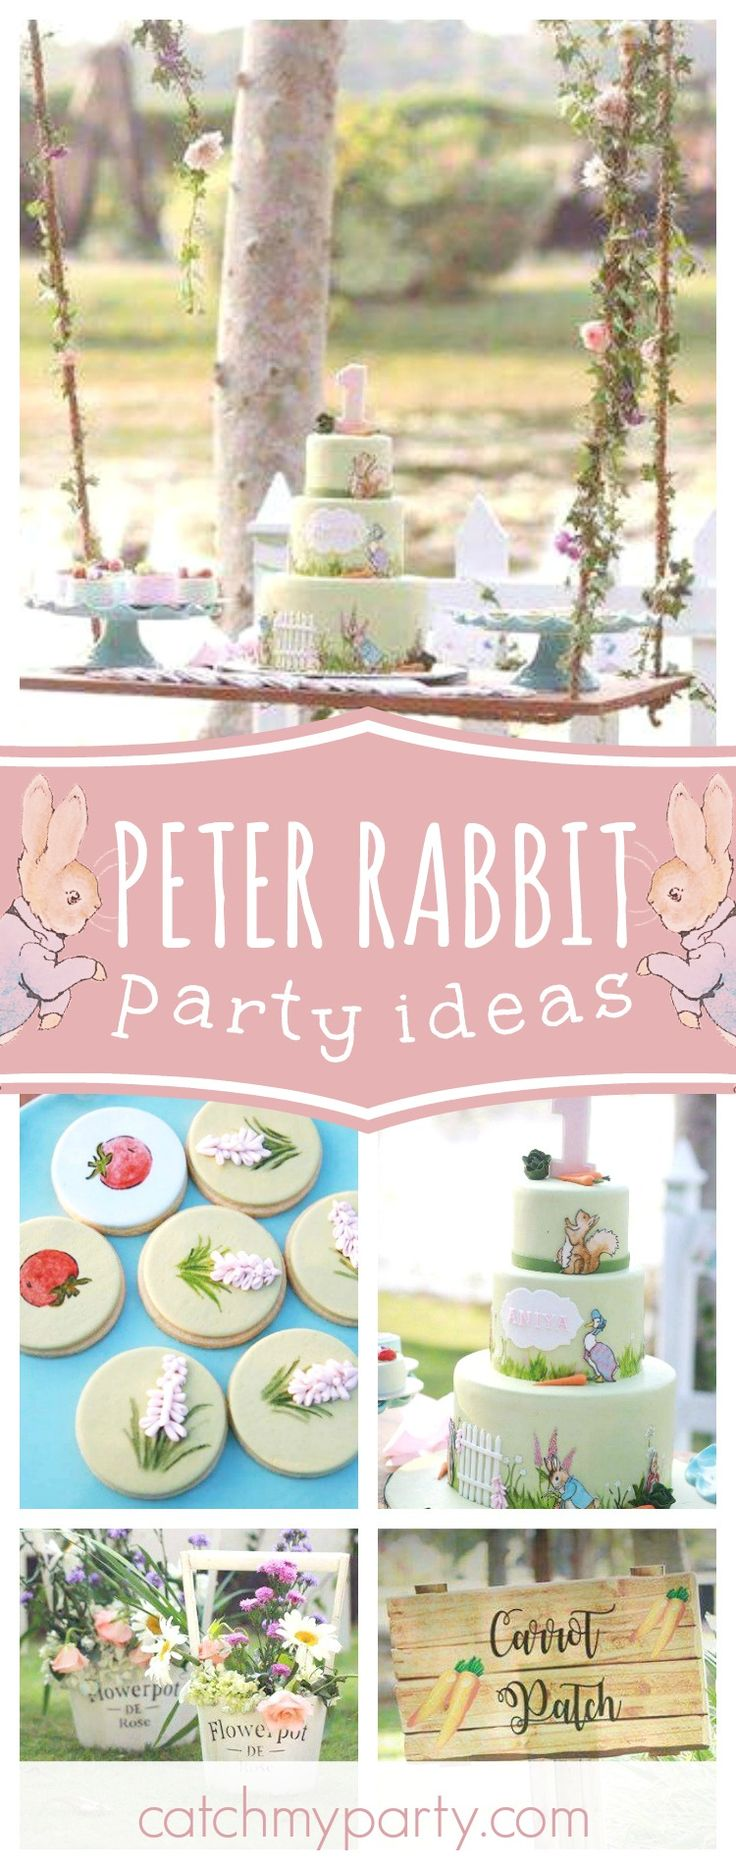 Don't miss this gorgeous Peter Rabbit 1st birthday party. The birthday cake is amazing!! See more party ideas and share yours at CatchMyParty.com